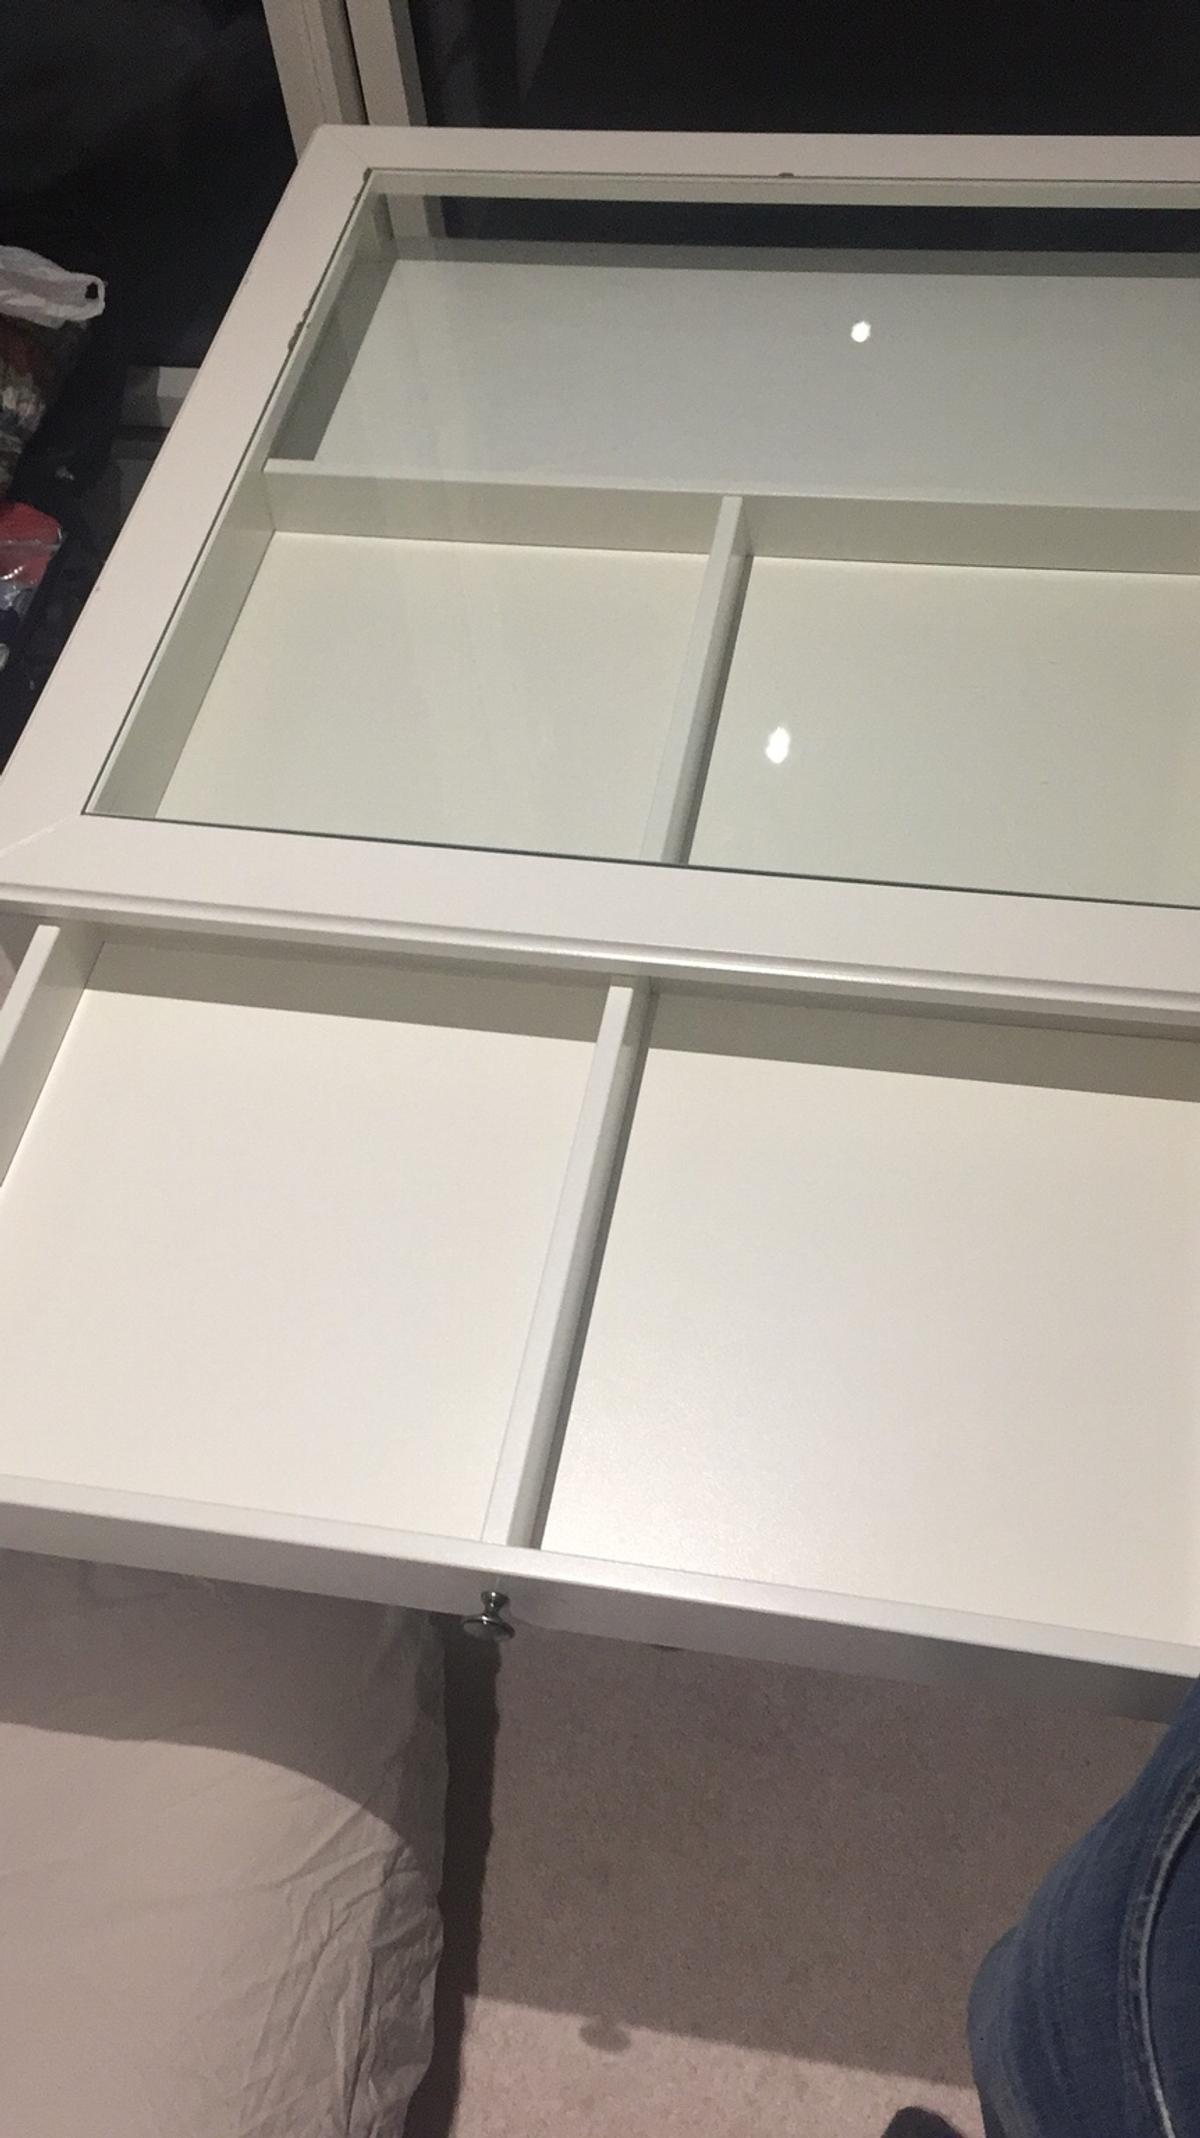 Ikea Liatorp Coffee Table In E16 London For 9500 For Sale